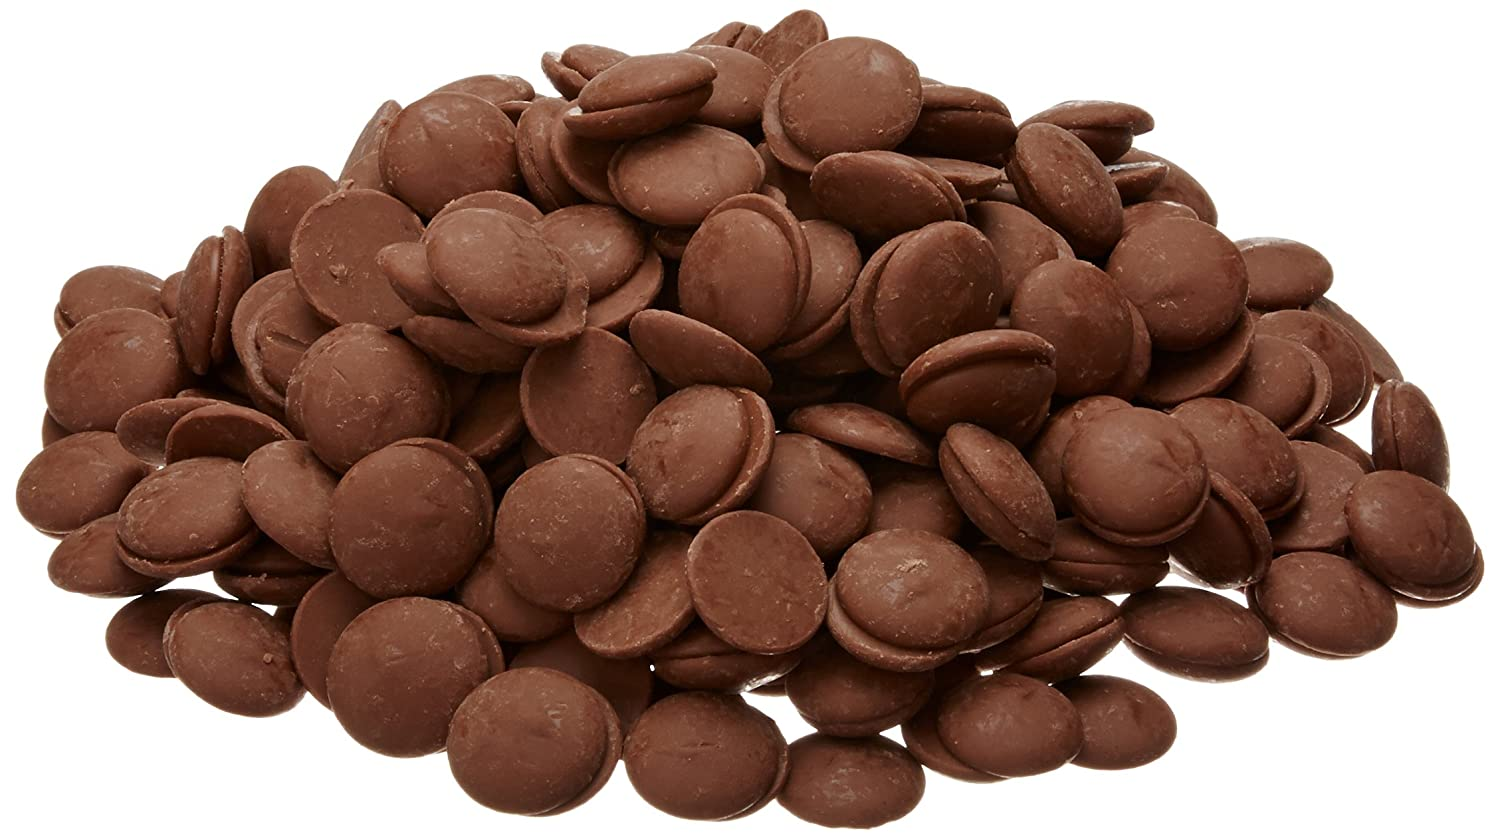 Amazon.com : Oasis Supply Mercken's Chocolate Wafters Candy Making ...